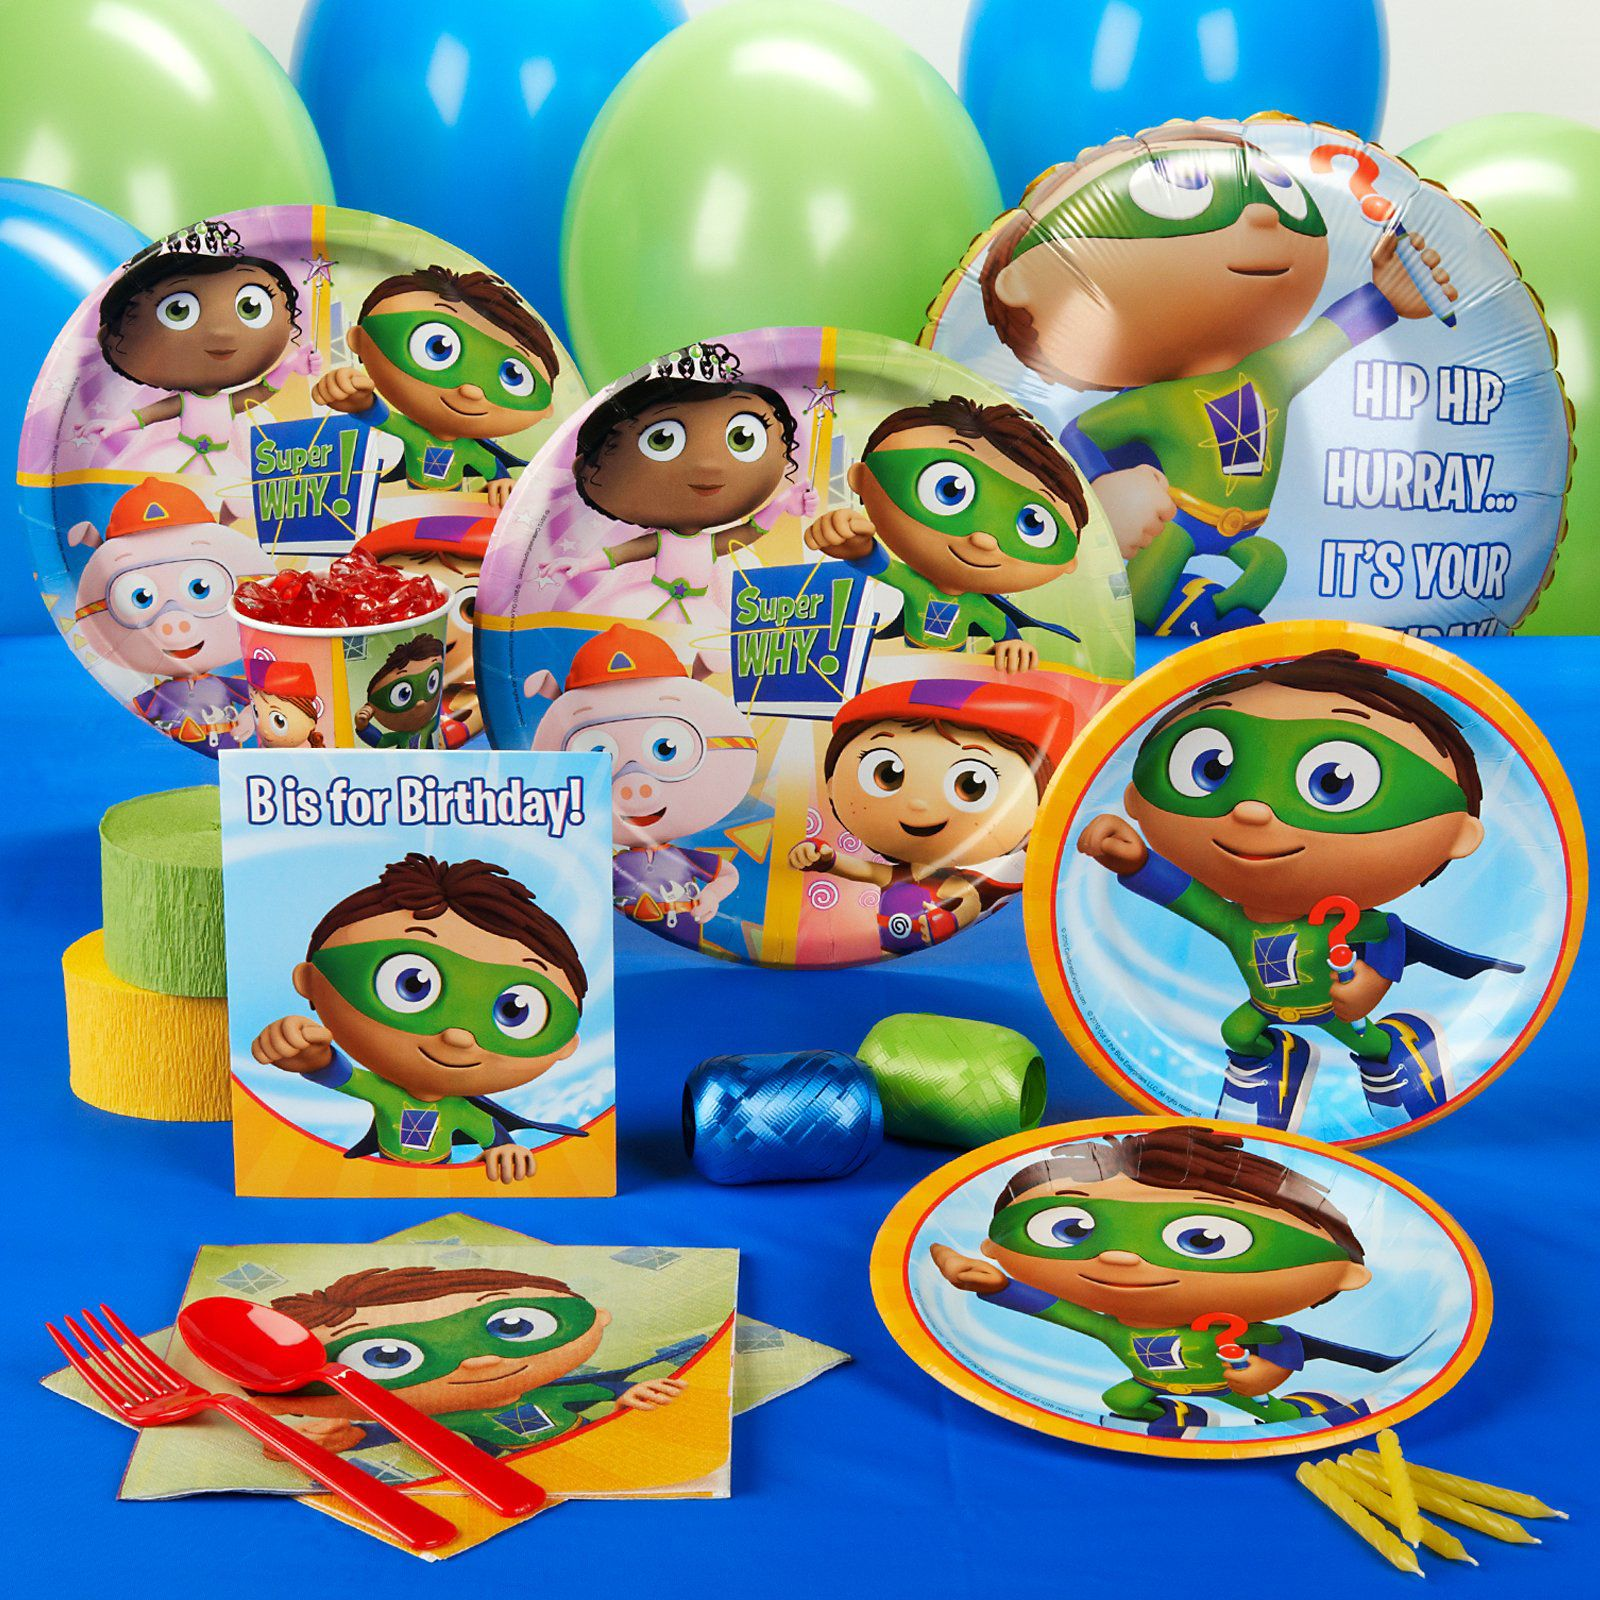 The Official PBS KIDS Shop